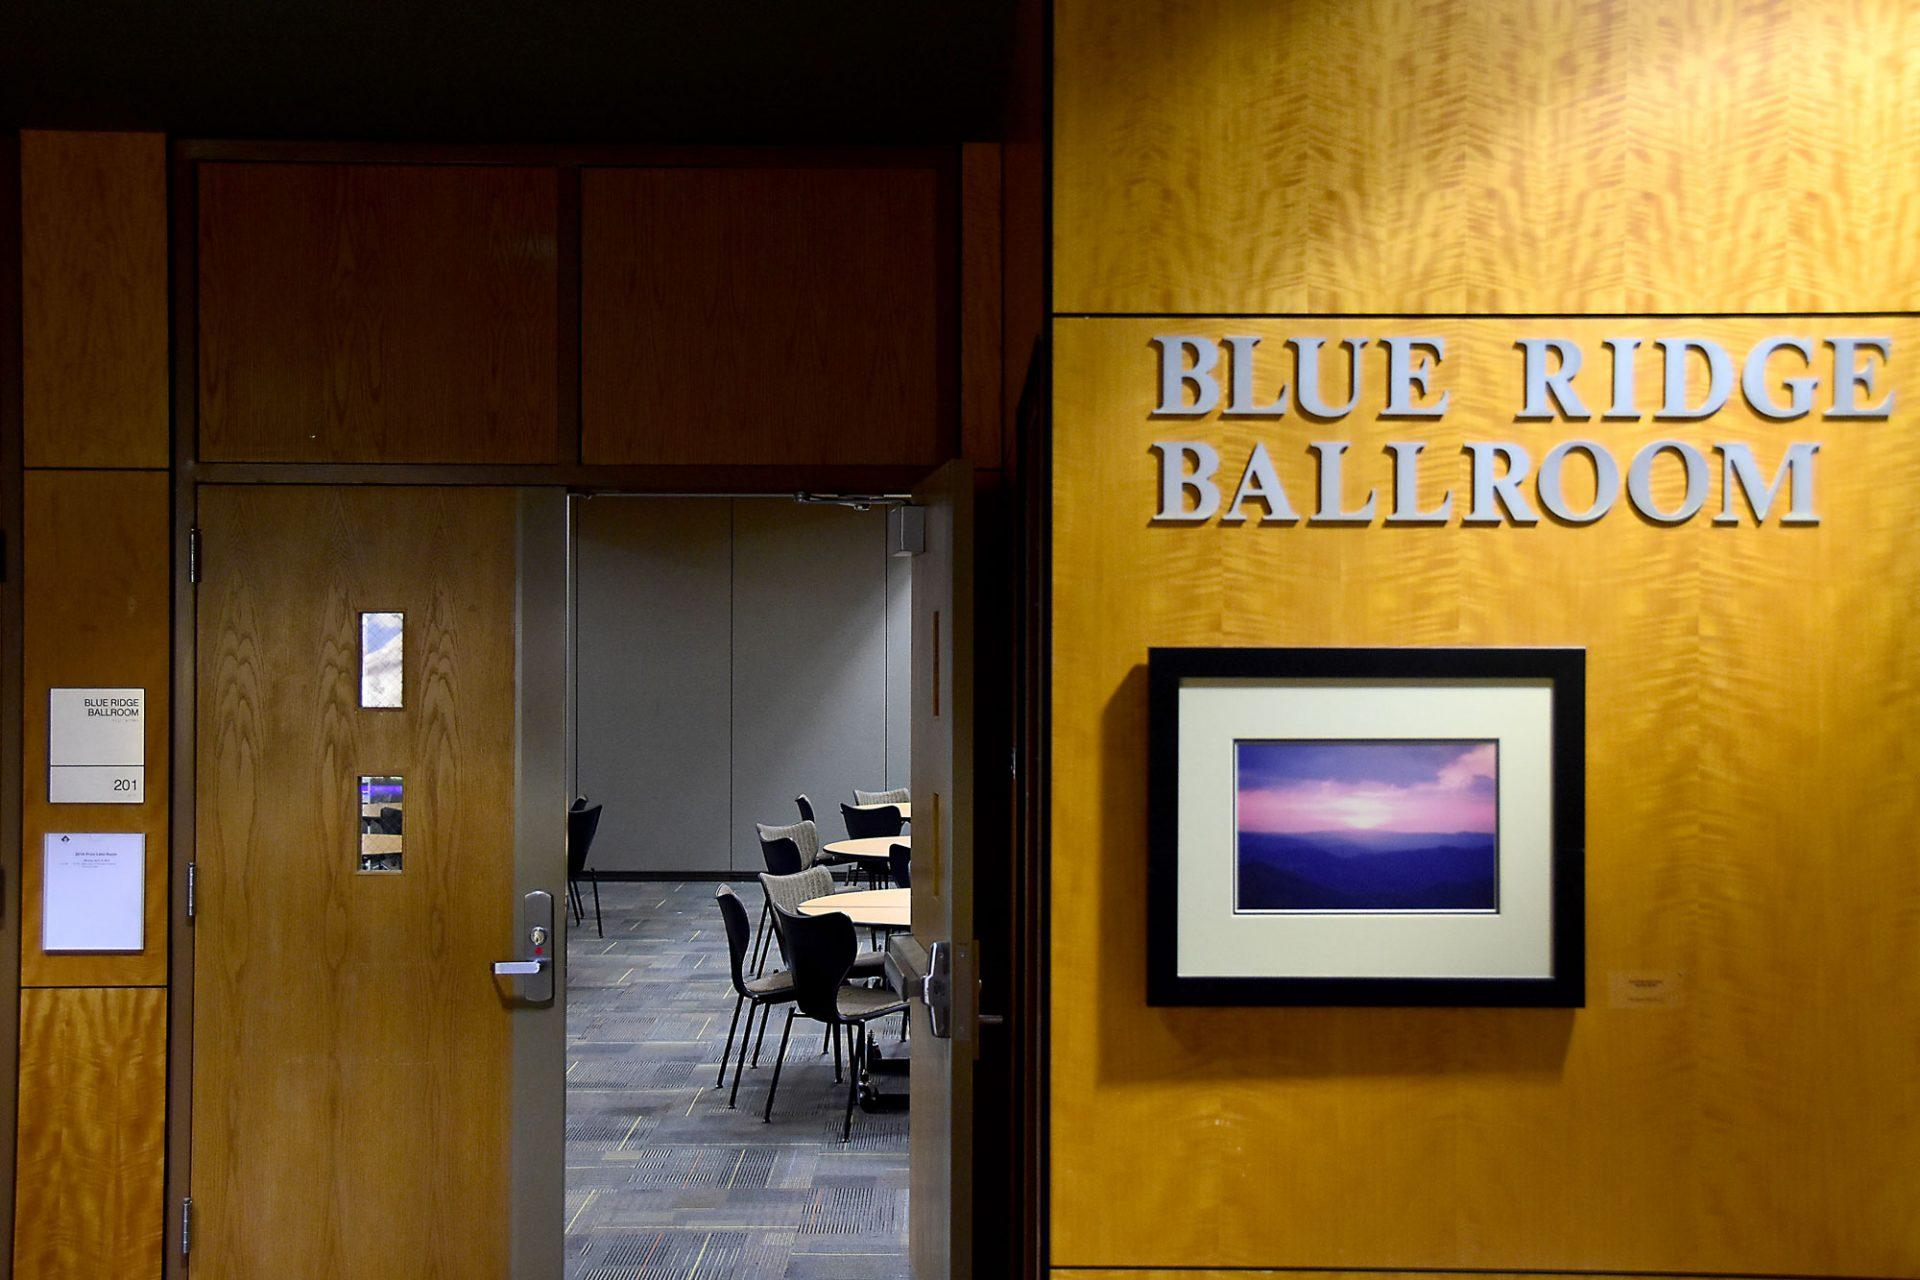 Faculty Senate recommends Blue Ridge Ballroom as on-campus voting site